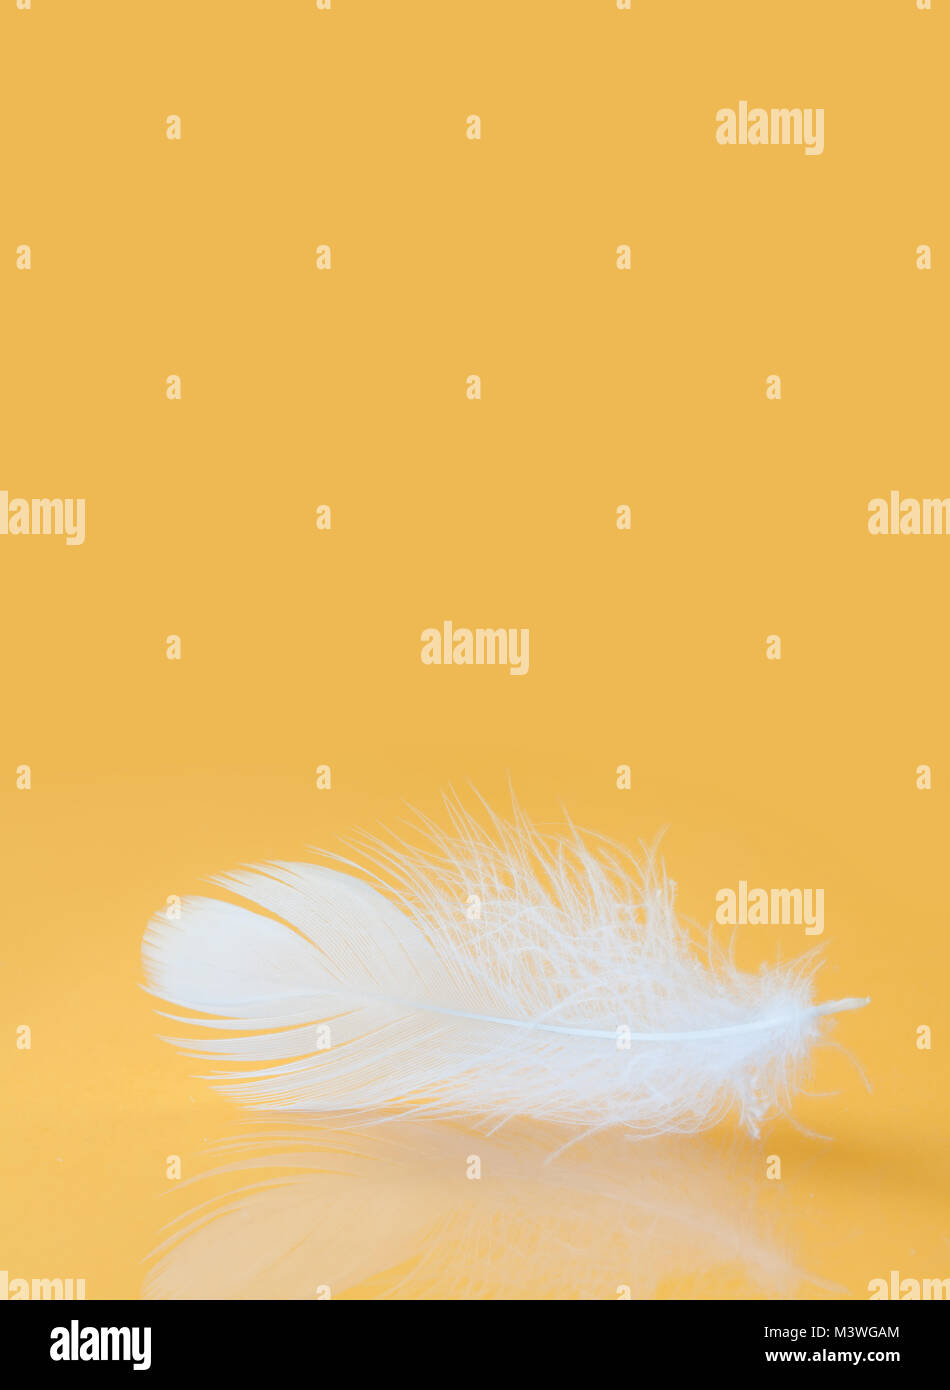 Fluffy white feather texture macro view. Luxury softness concept. Bird plumage feathering on yellow background. - Stock Image